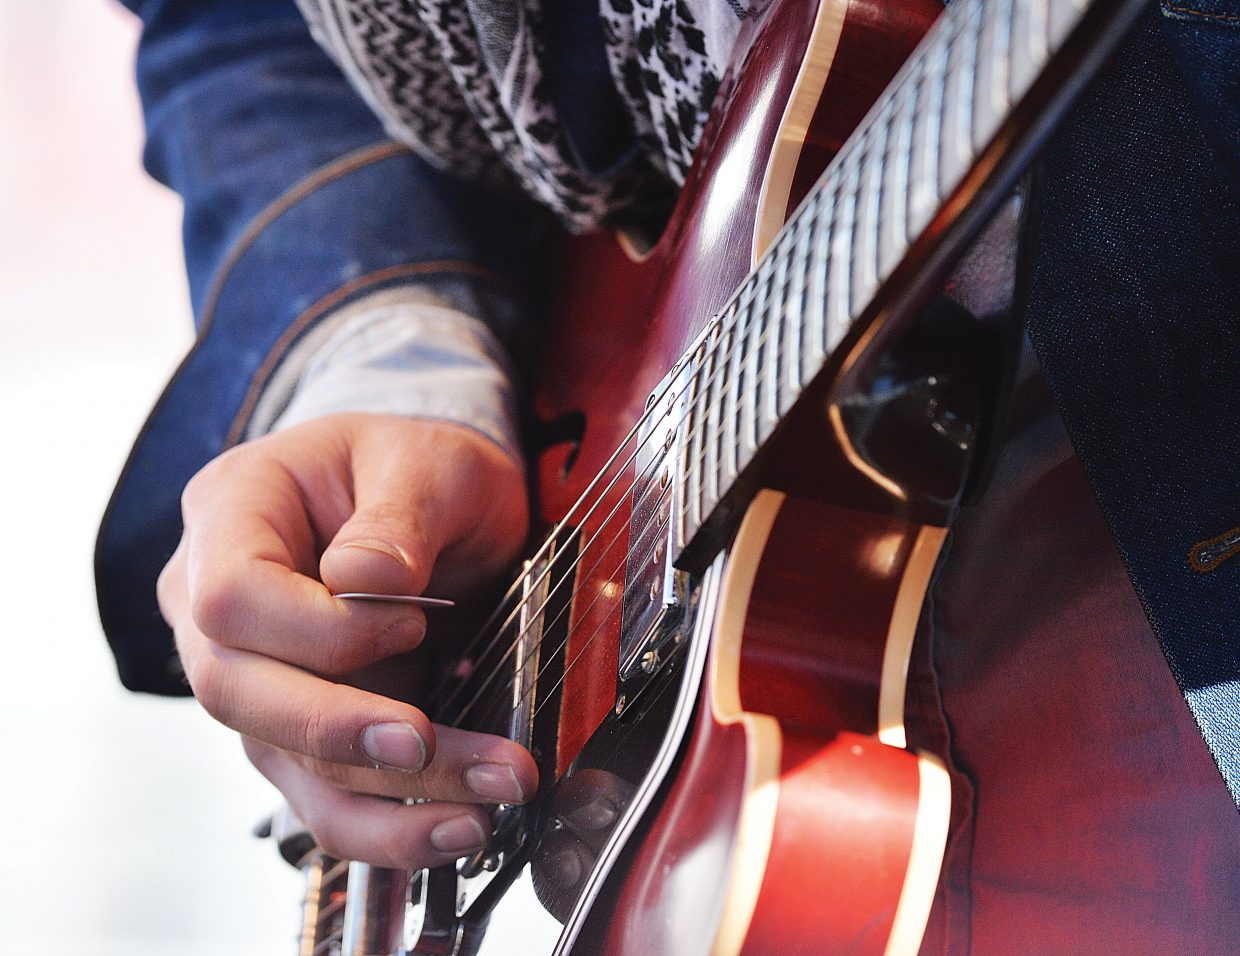 A member of Jonathan Tyler's band jams on his guitar during a free concert in Gondola Square on Wednesday.